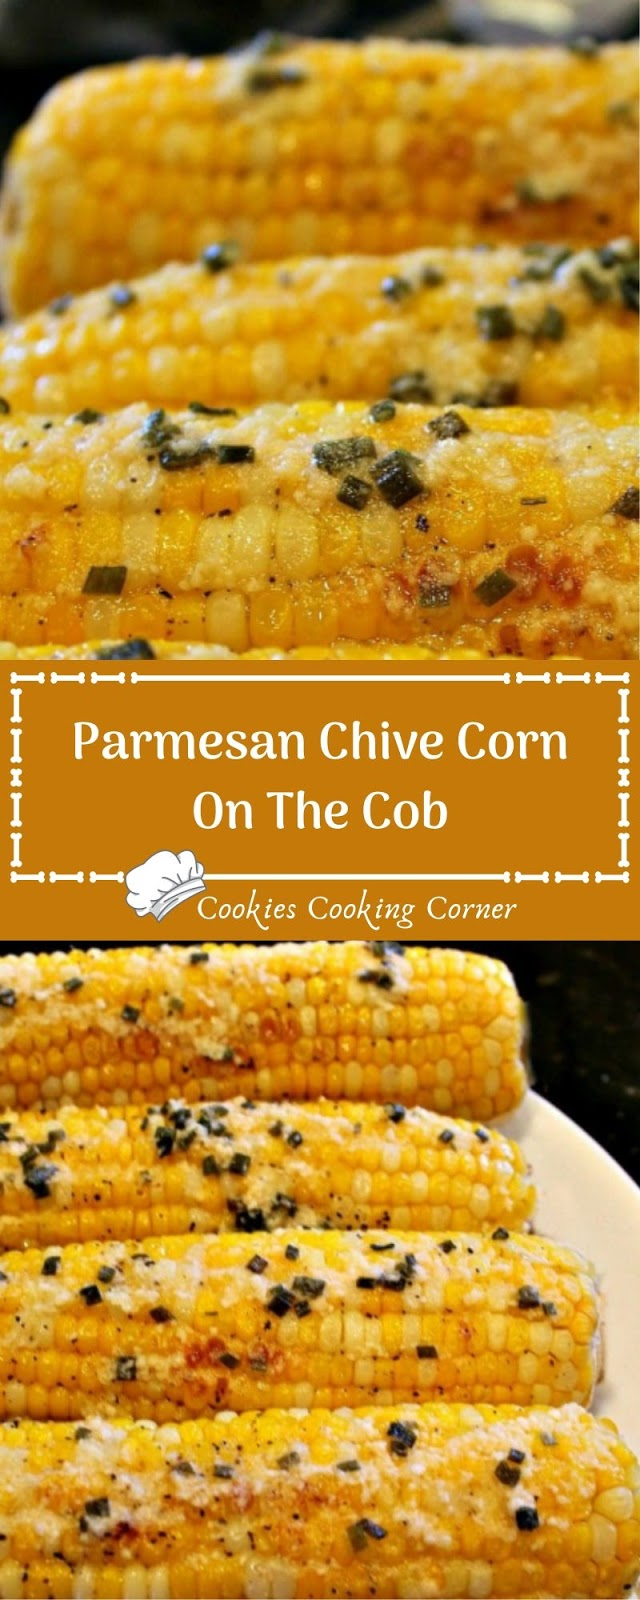 Parmesan Chive Corn On The Cob